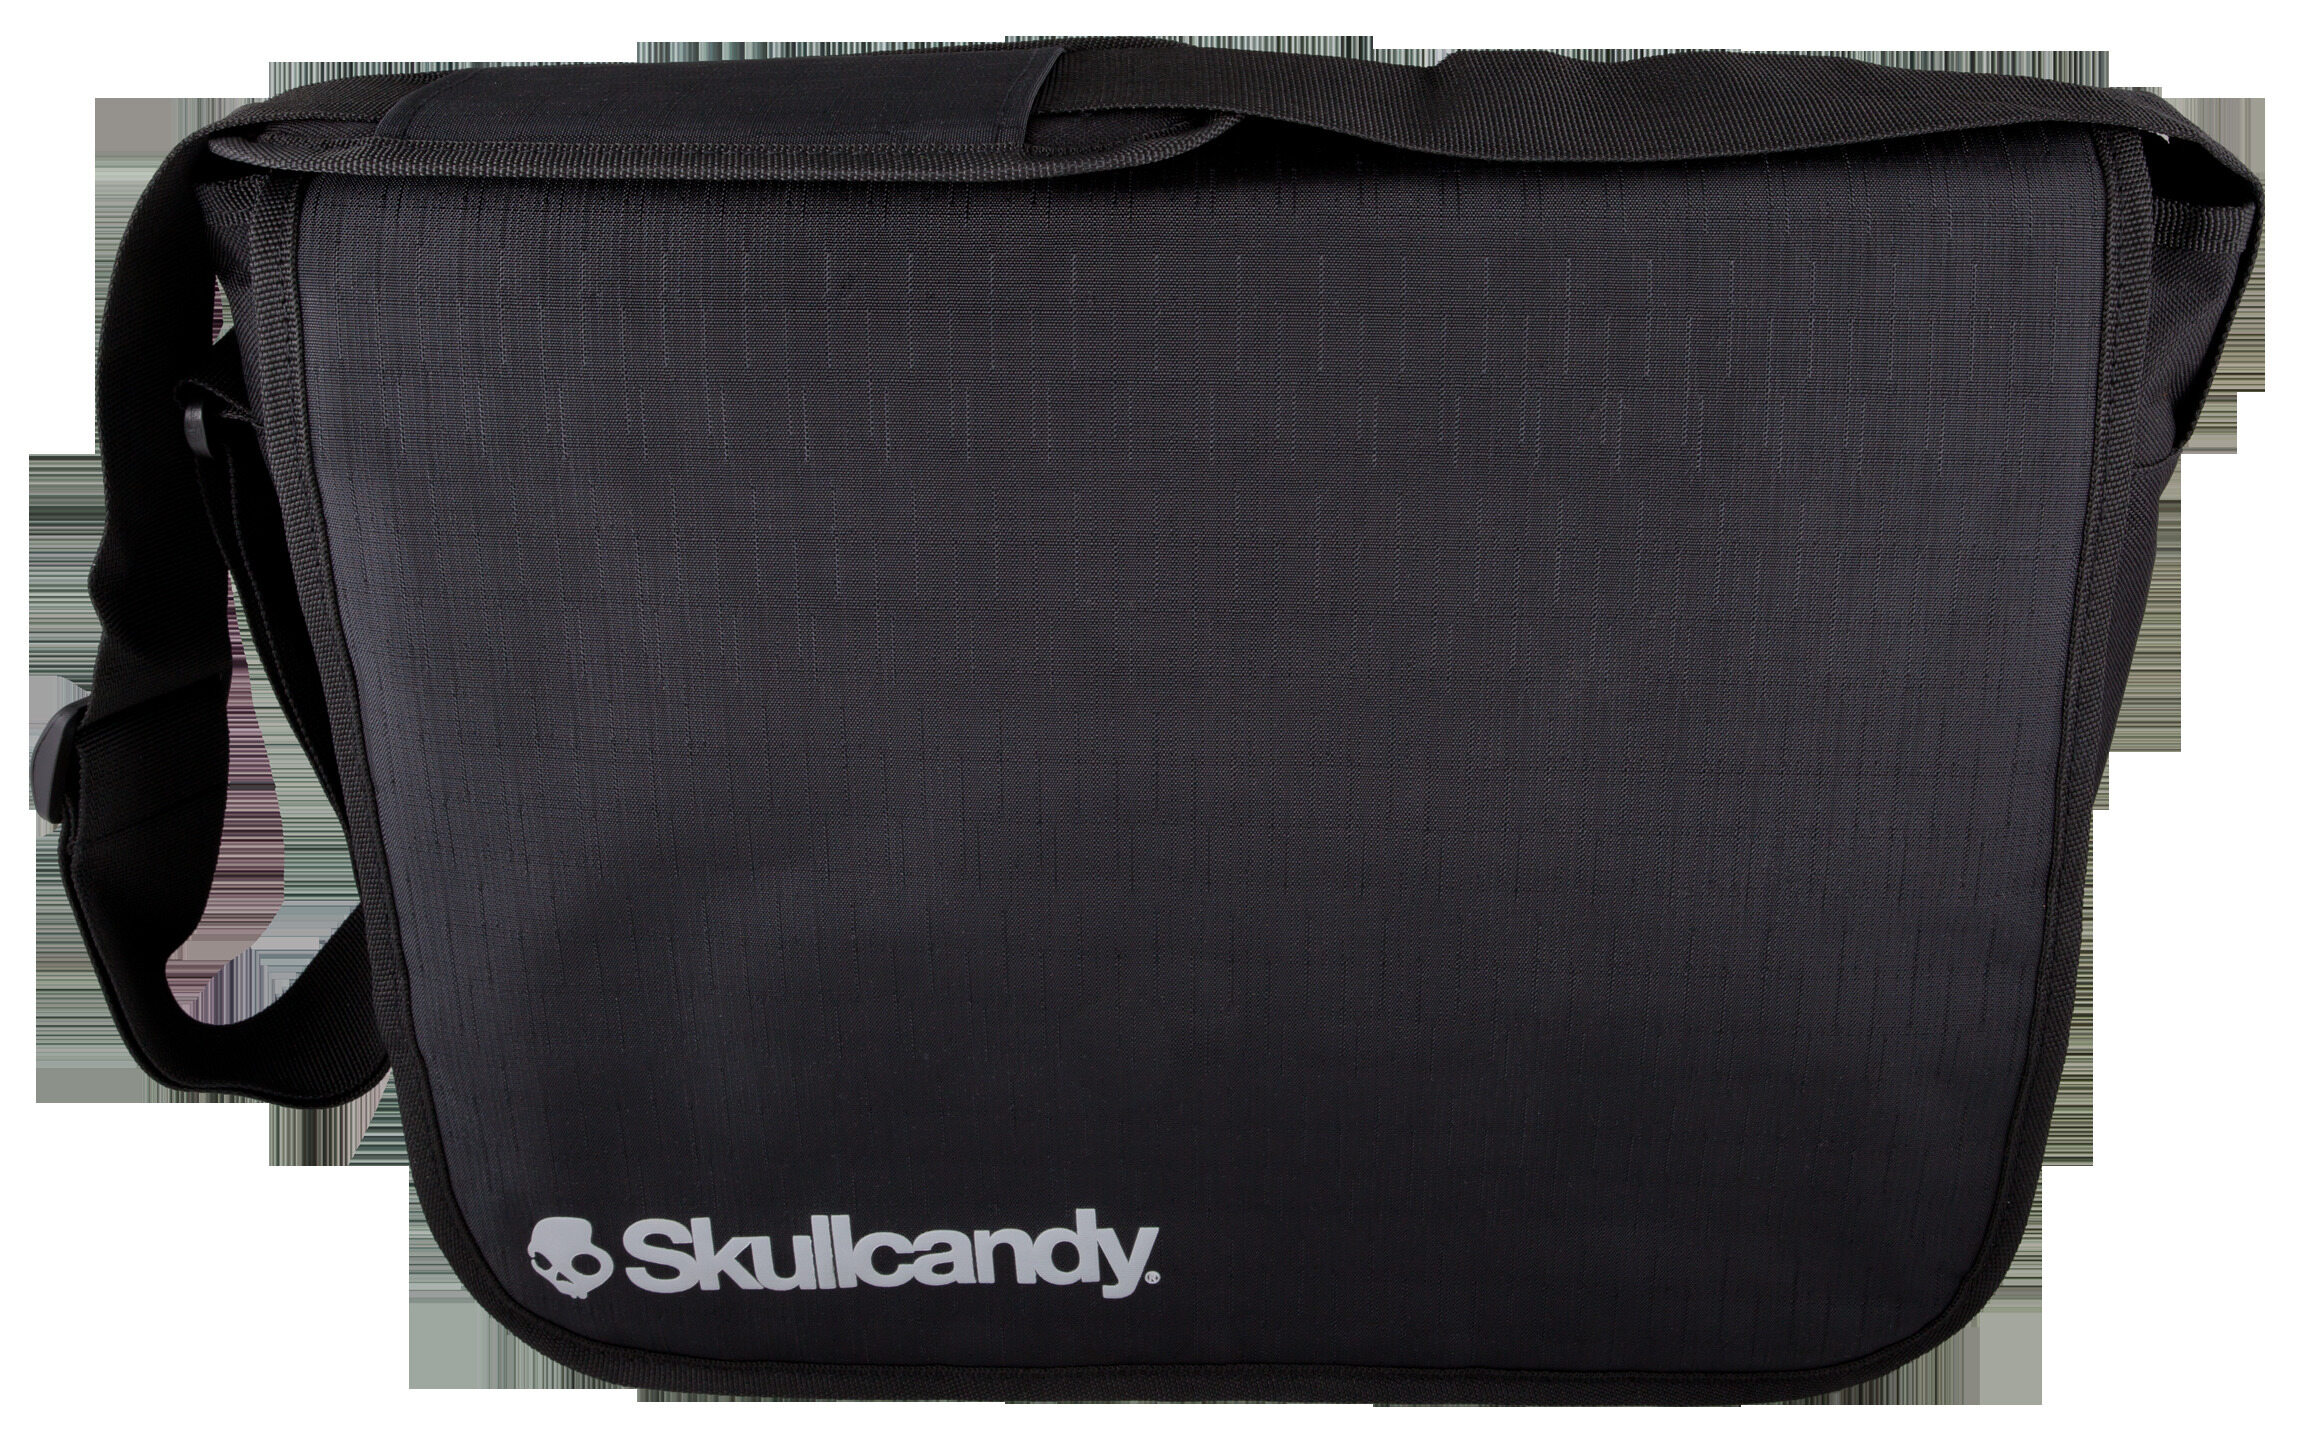 Skullcandy College Sling Bag - 2Tone Grey